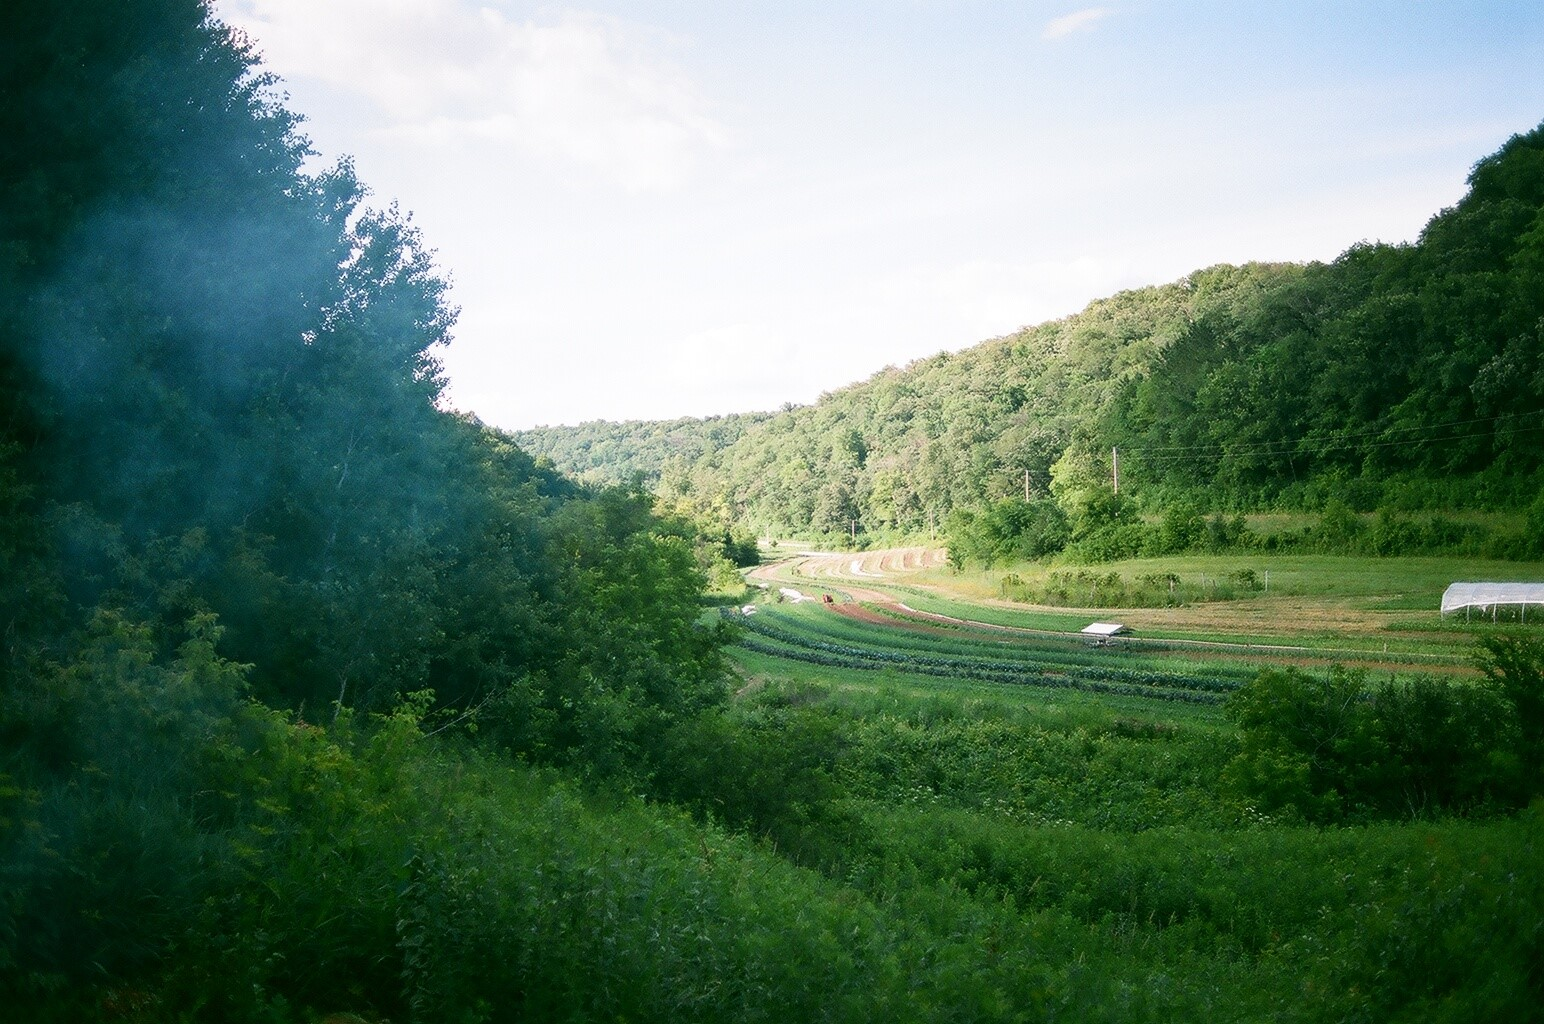 view from childhood home. Jones valley farm.